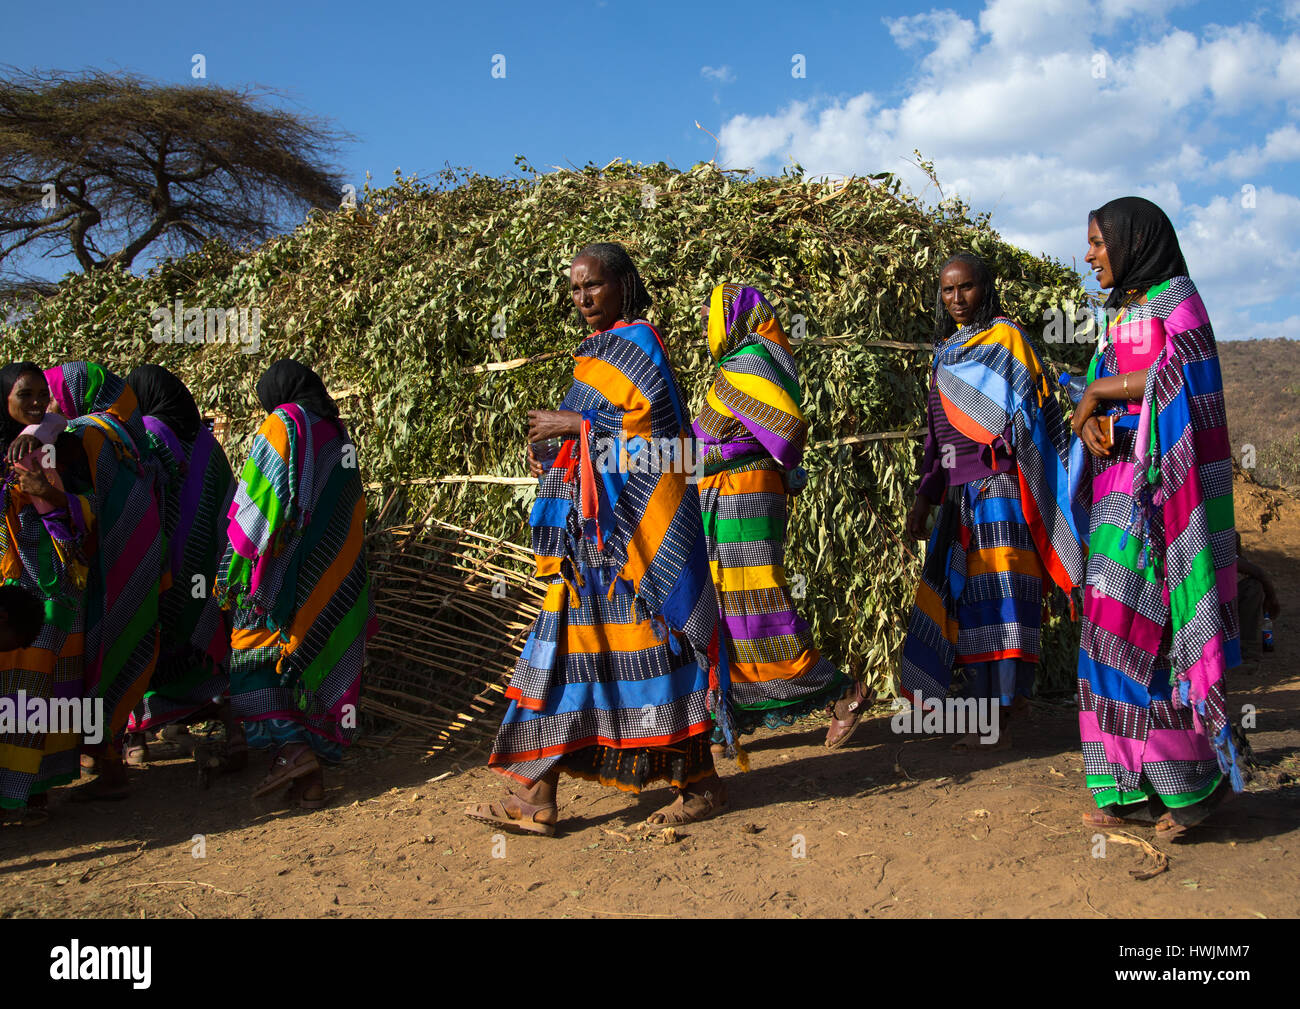 Borana women in traditional clothing during the Gada system